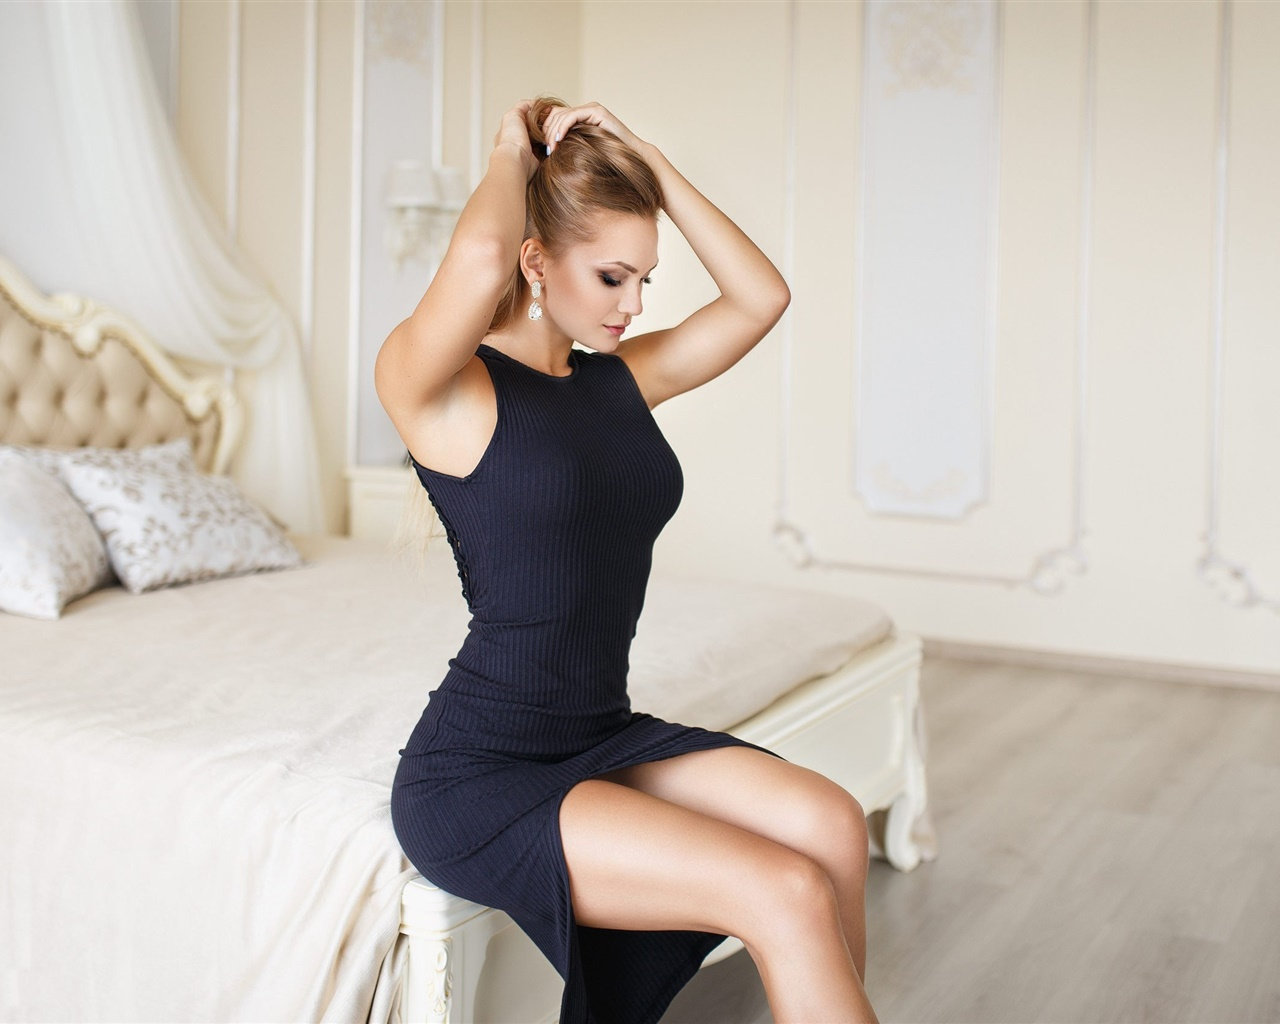 Black dress girl, bedroom, bed, hairstyle 1280x1024 wallpaper